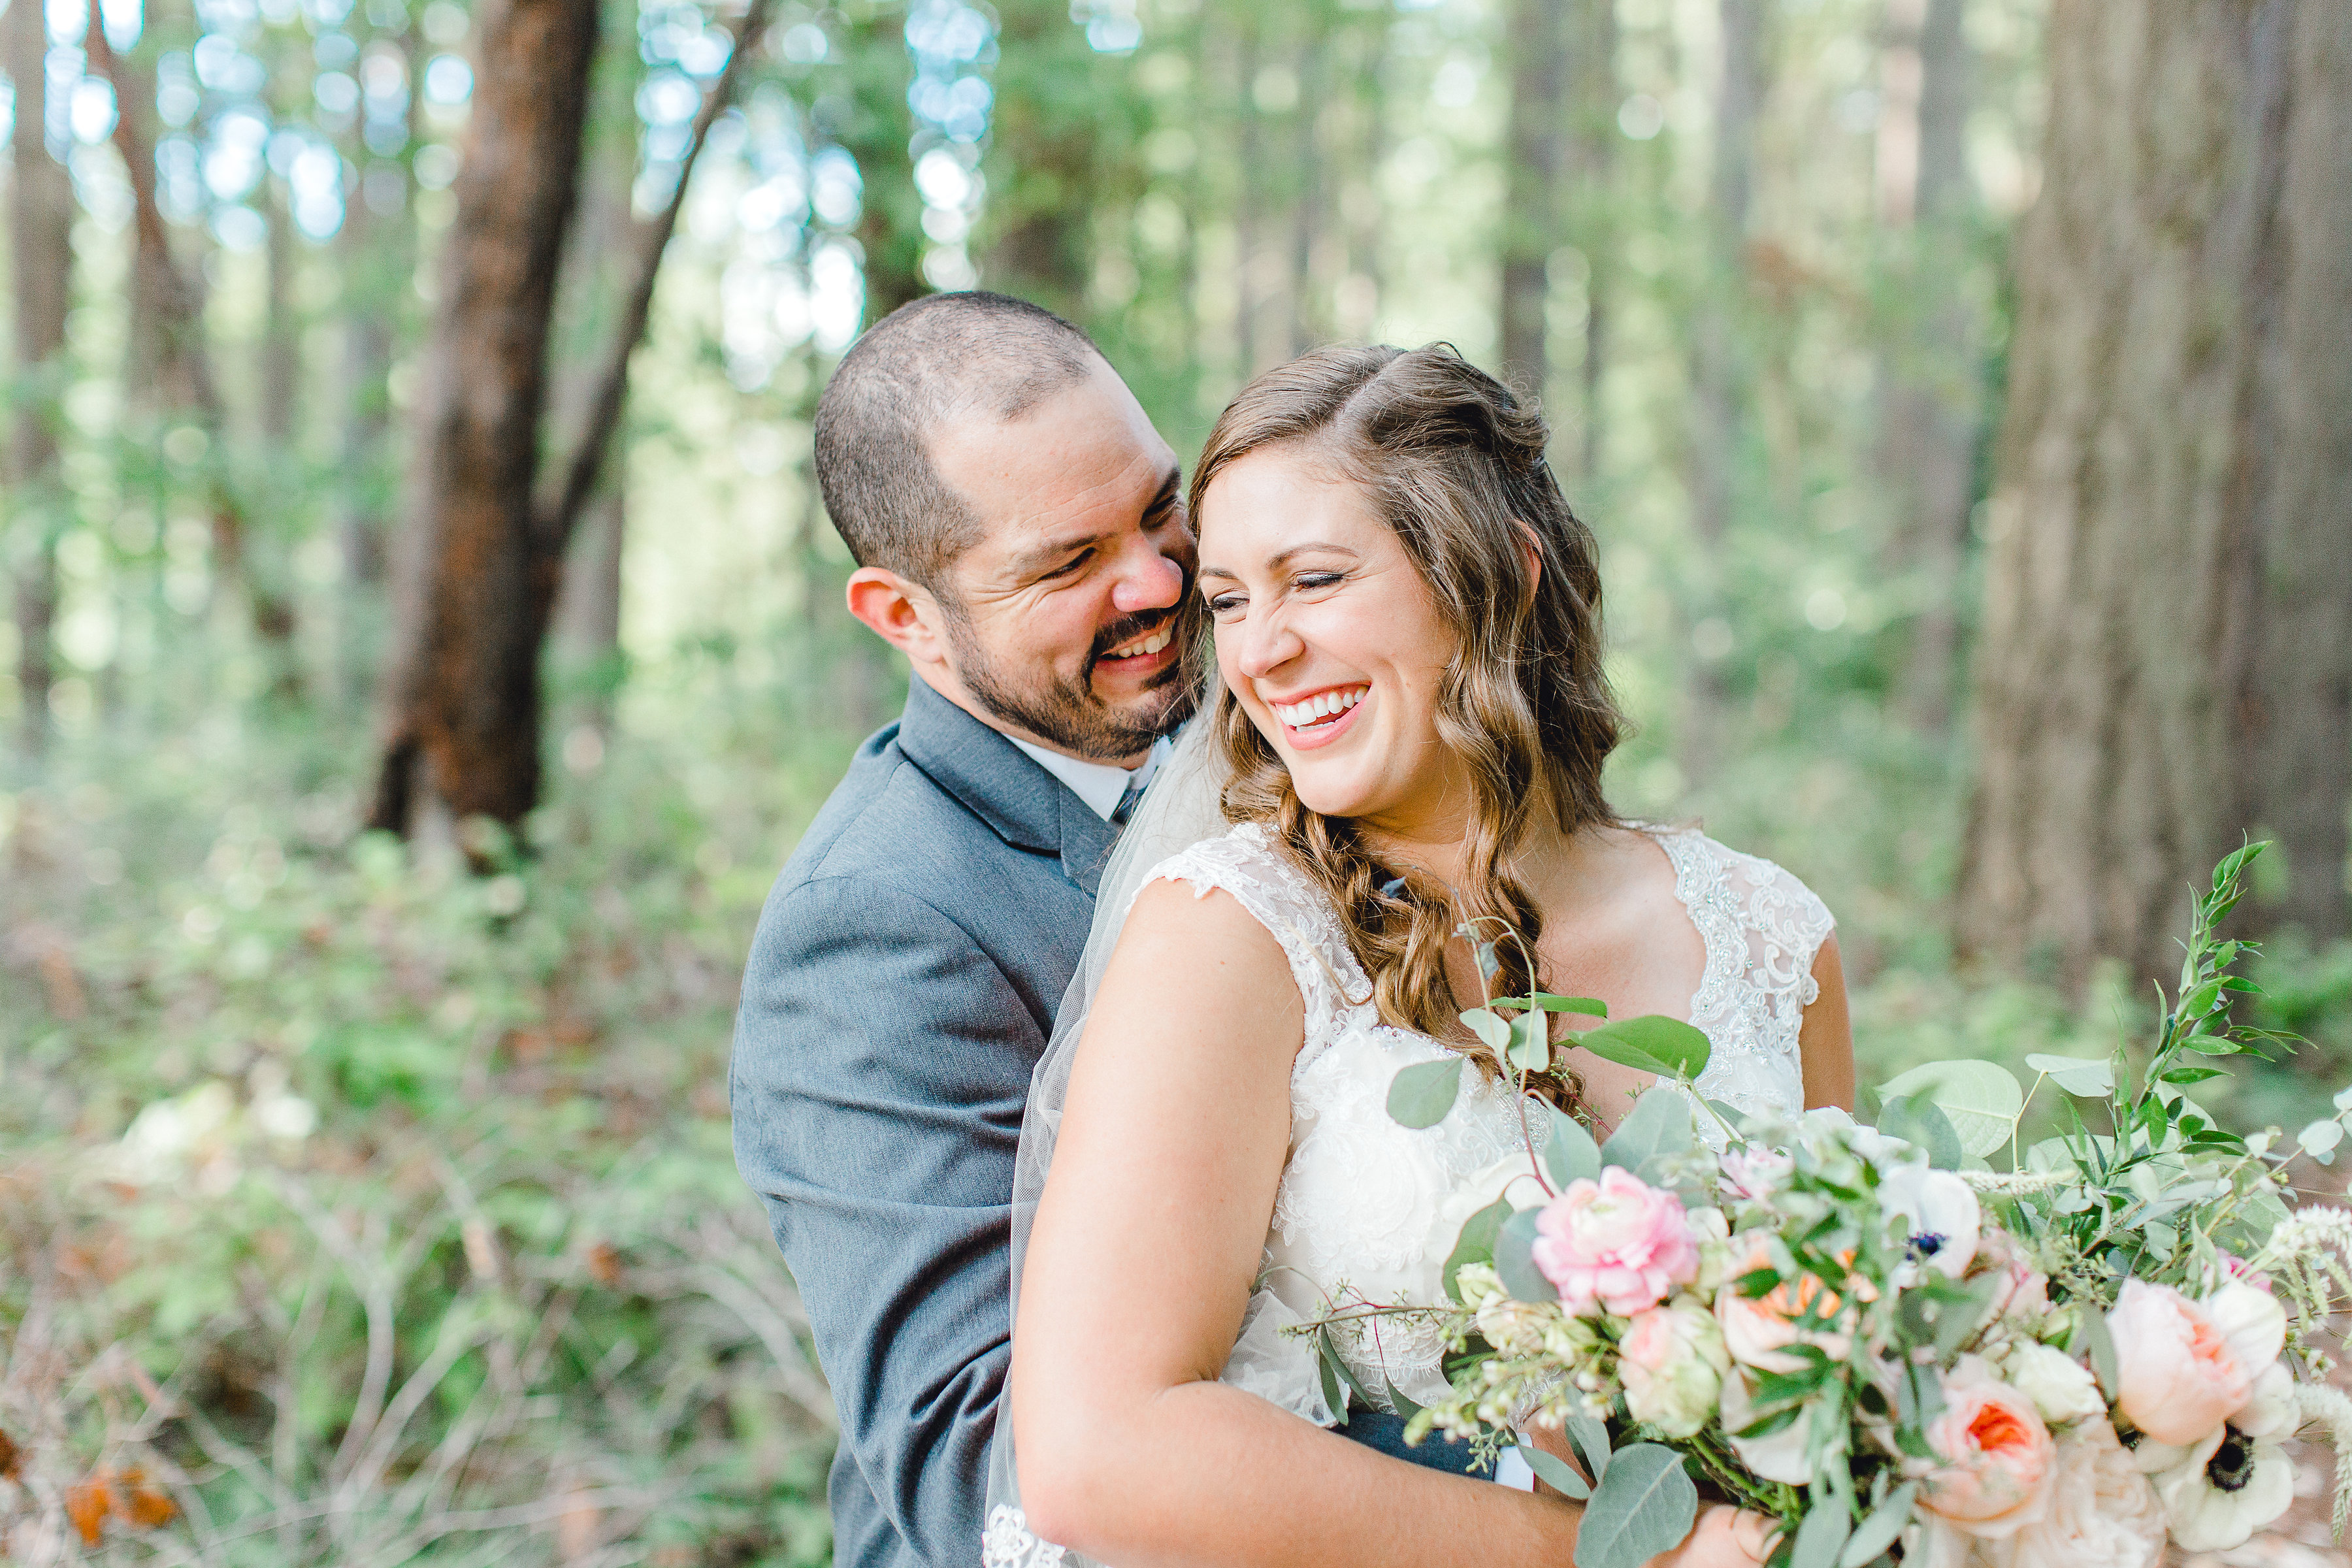 Seattle wedding, Washington wedding, bride and groom, PNW wedding, wedding inspiration, wedding flowers, Seattle bride, outdoor wedding, garden wedding, Brixby + Pine, wedding flowers, wedding bouquet, wedding florals, wedding photography, couples photos, bridals, bridal shoot, wedding portraits